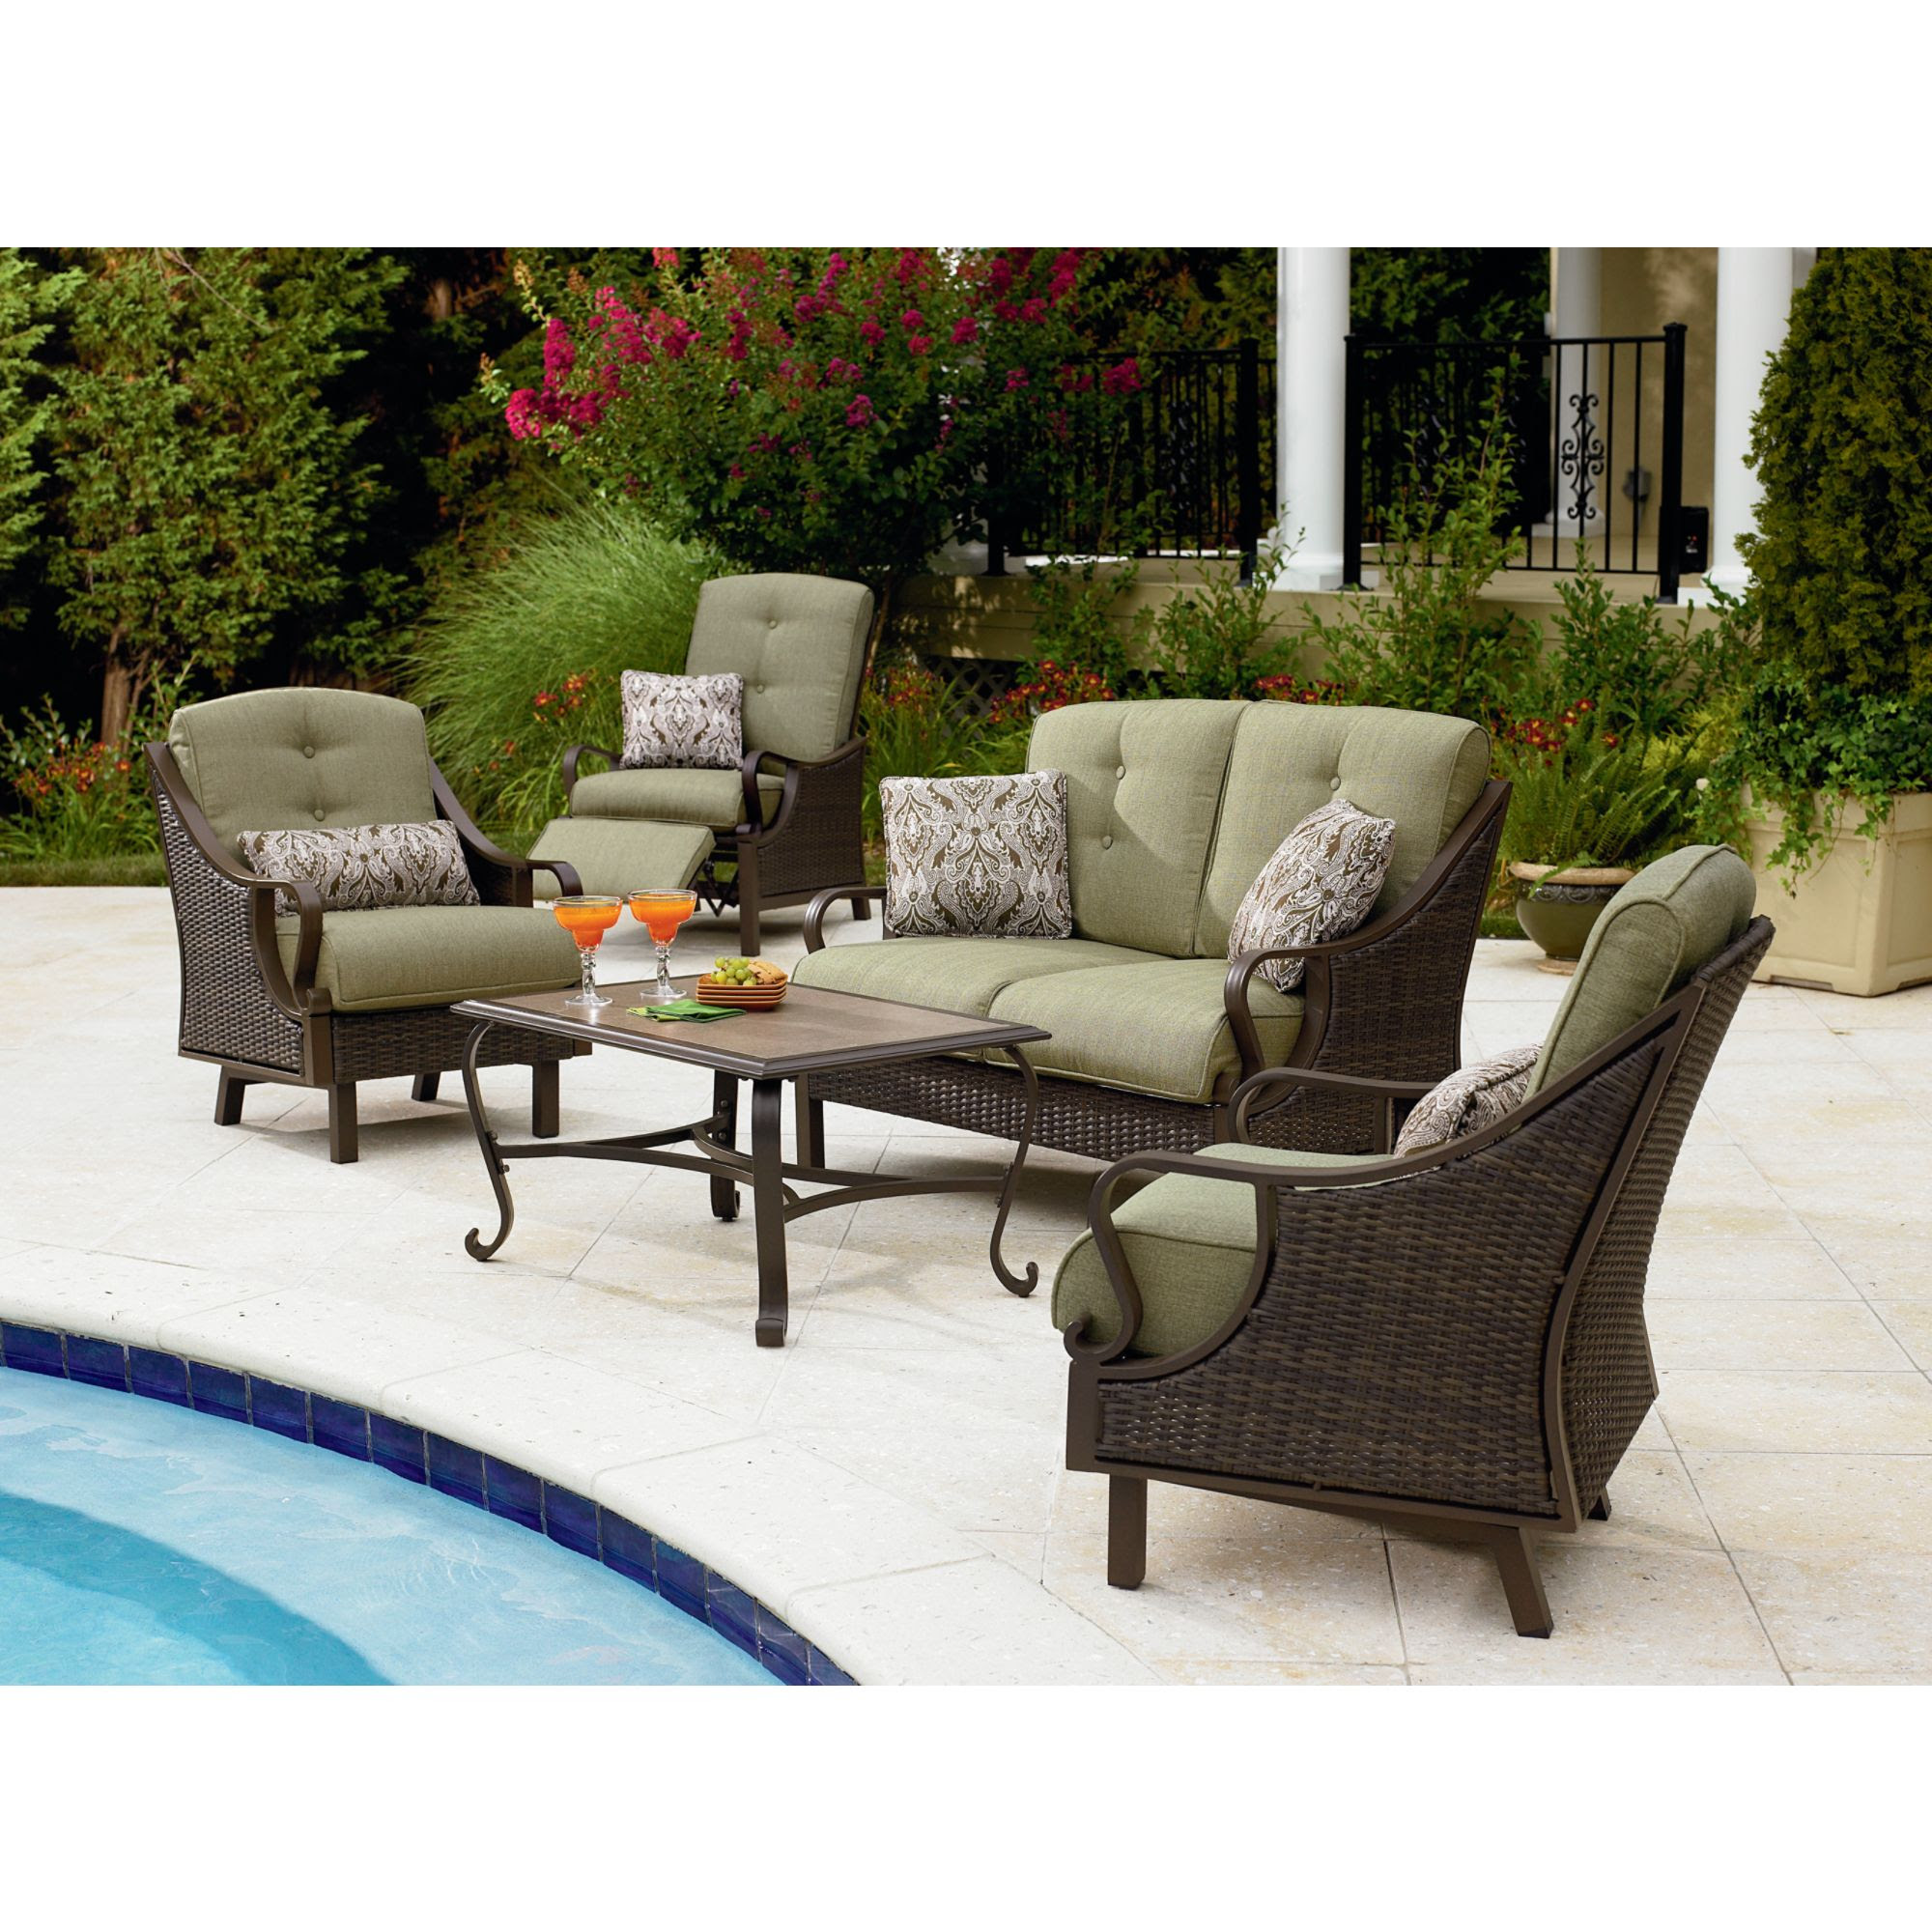 Sears Patio Furniture Replacement Cushions Modern Design